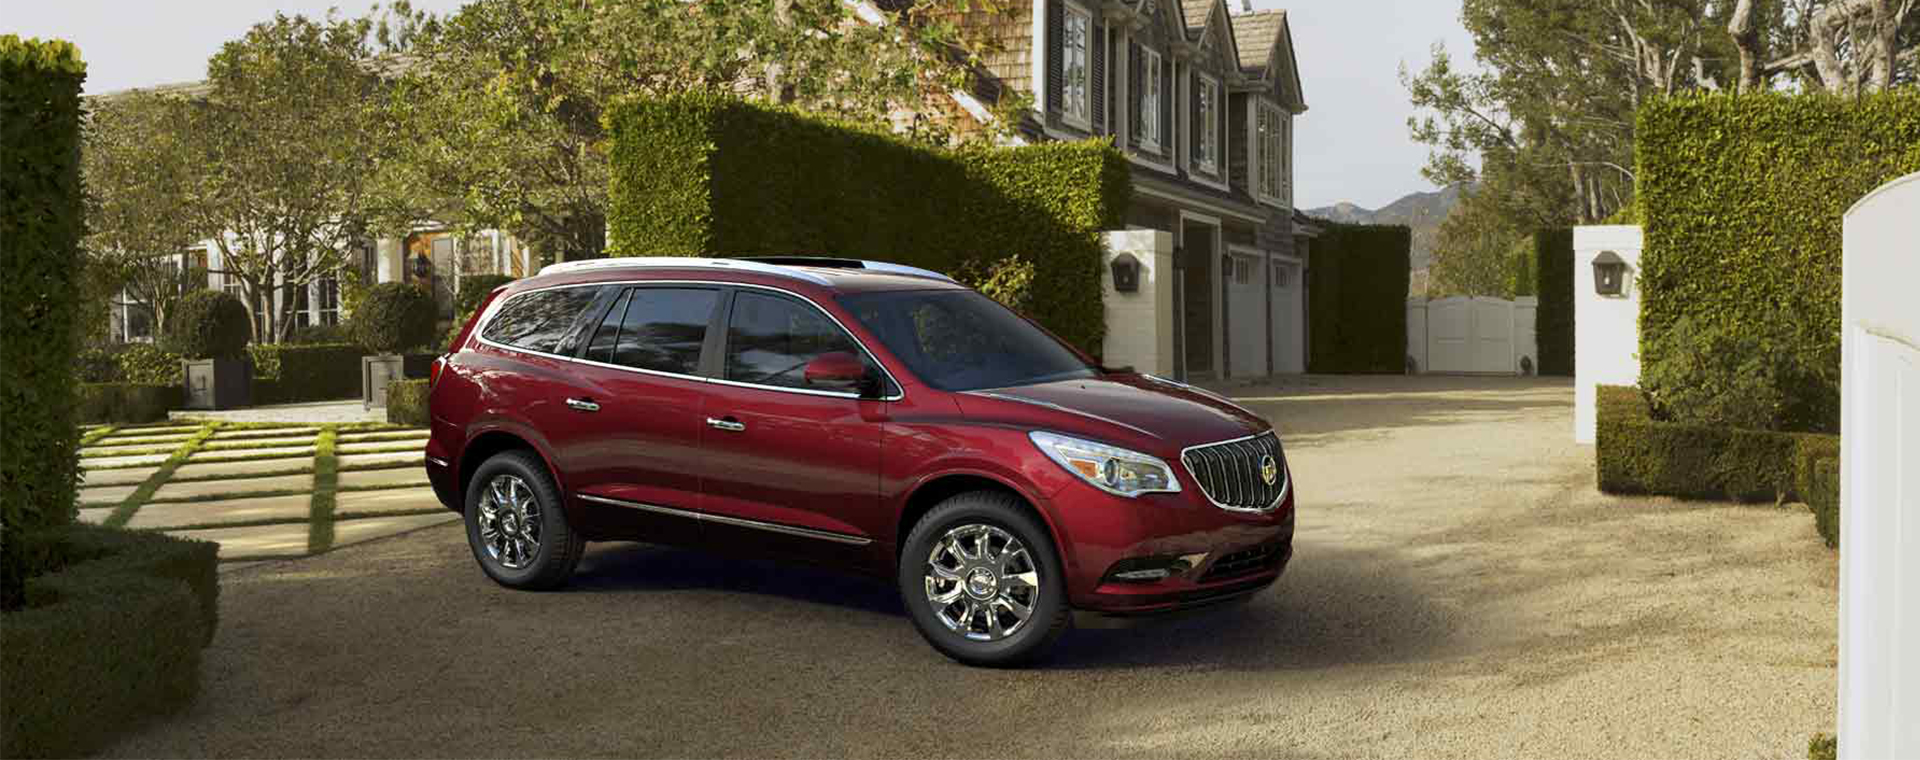 New Enclave inventory at Quirk Buick GMC